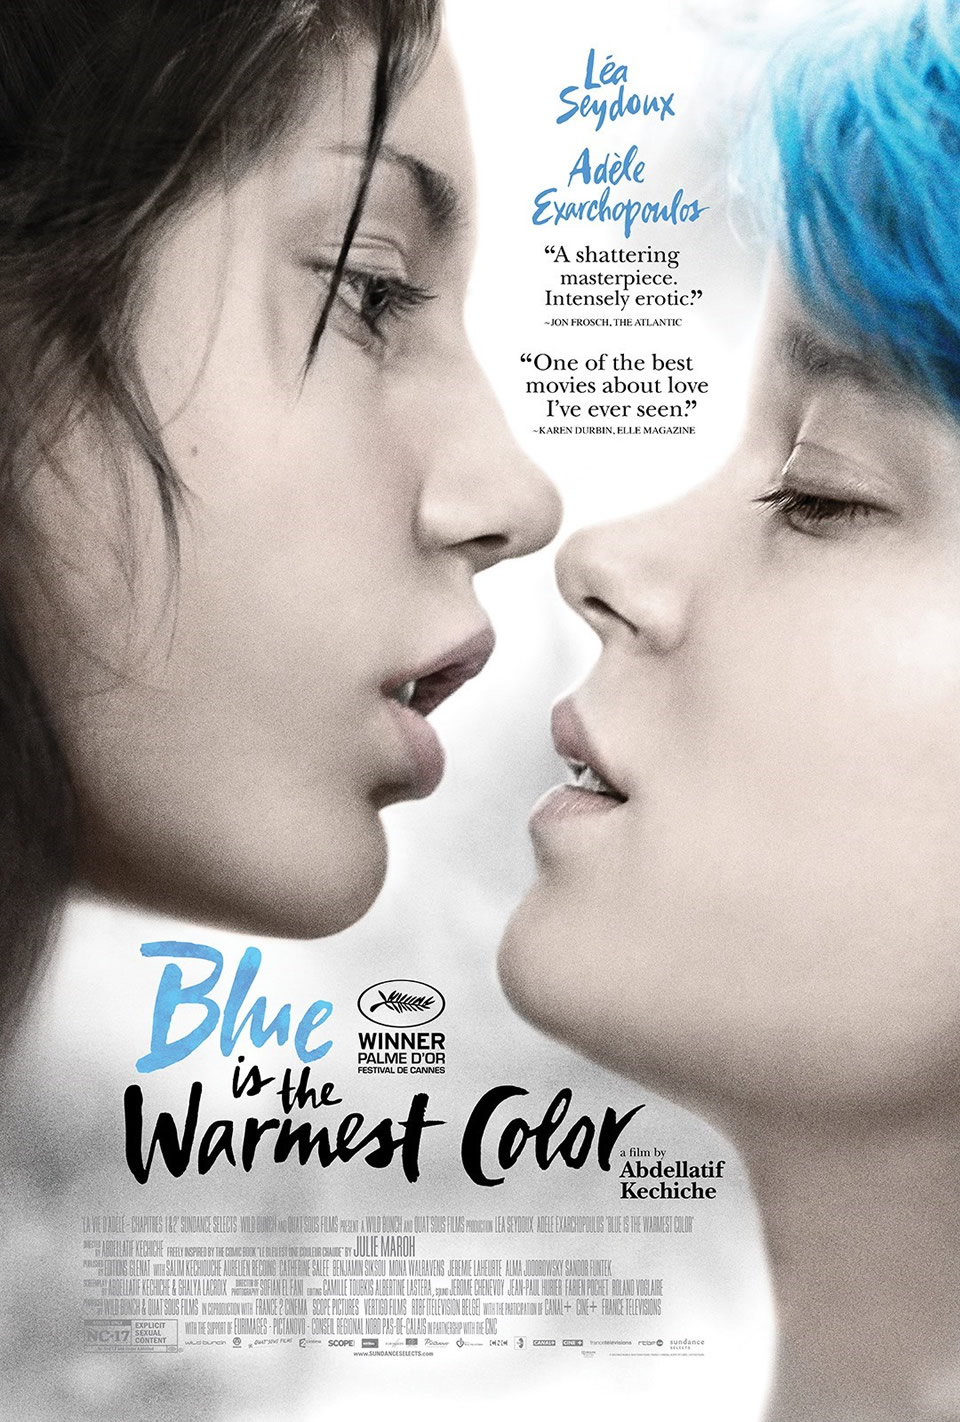 3. Blue Is the Warmest Color (2013)